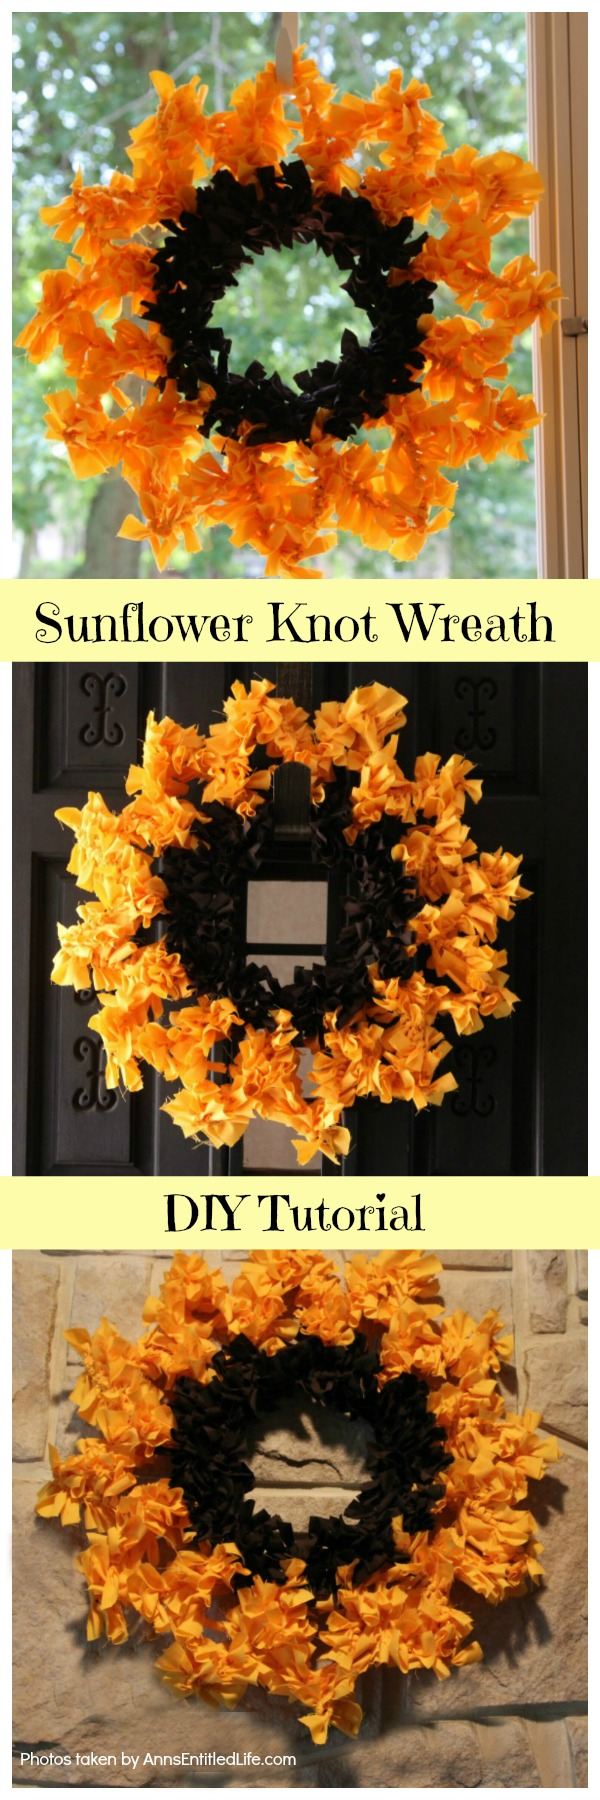 3 images of a sunflower wreath, the top image is against a screen door with a leaves in the background, middle image against a dark brown door, bottom image against a stone fireplace